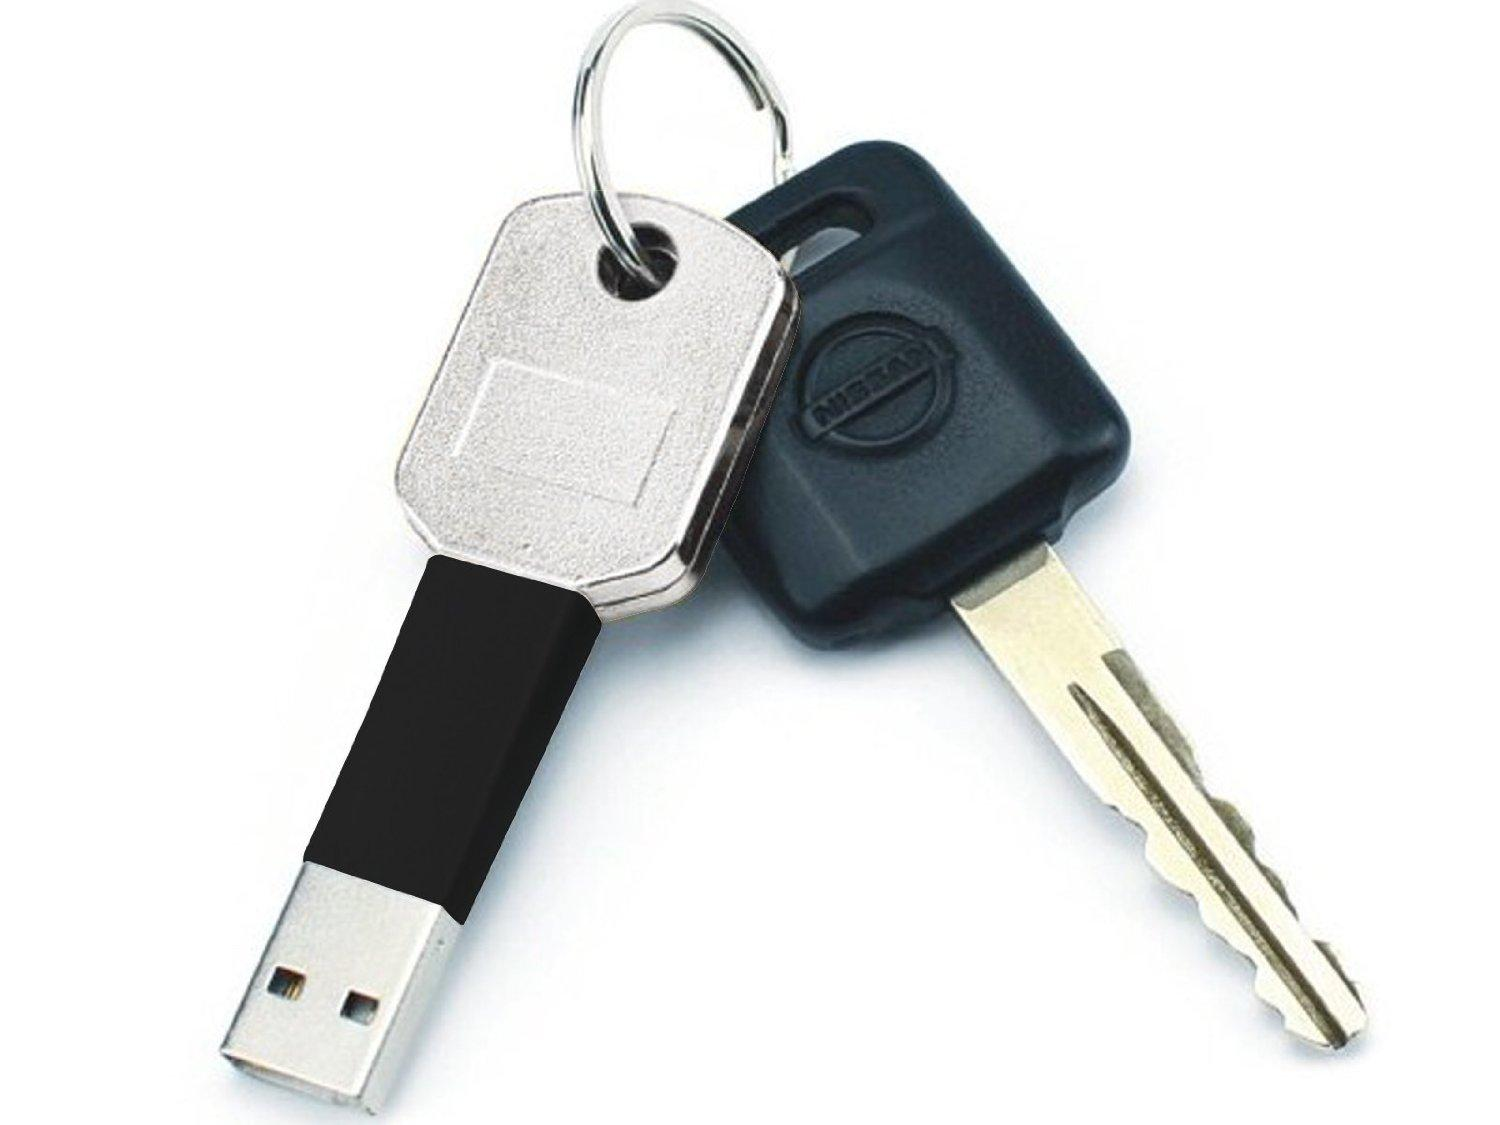 buy keyring usb charger iphone 5 5s only at uerotek. Black Bedroom Furniture Sets. Home Design Ideas